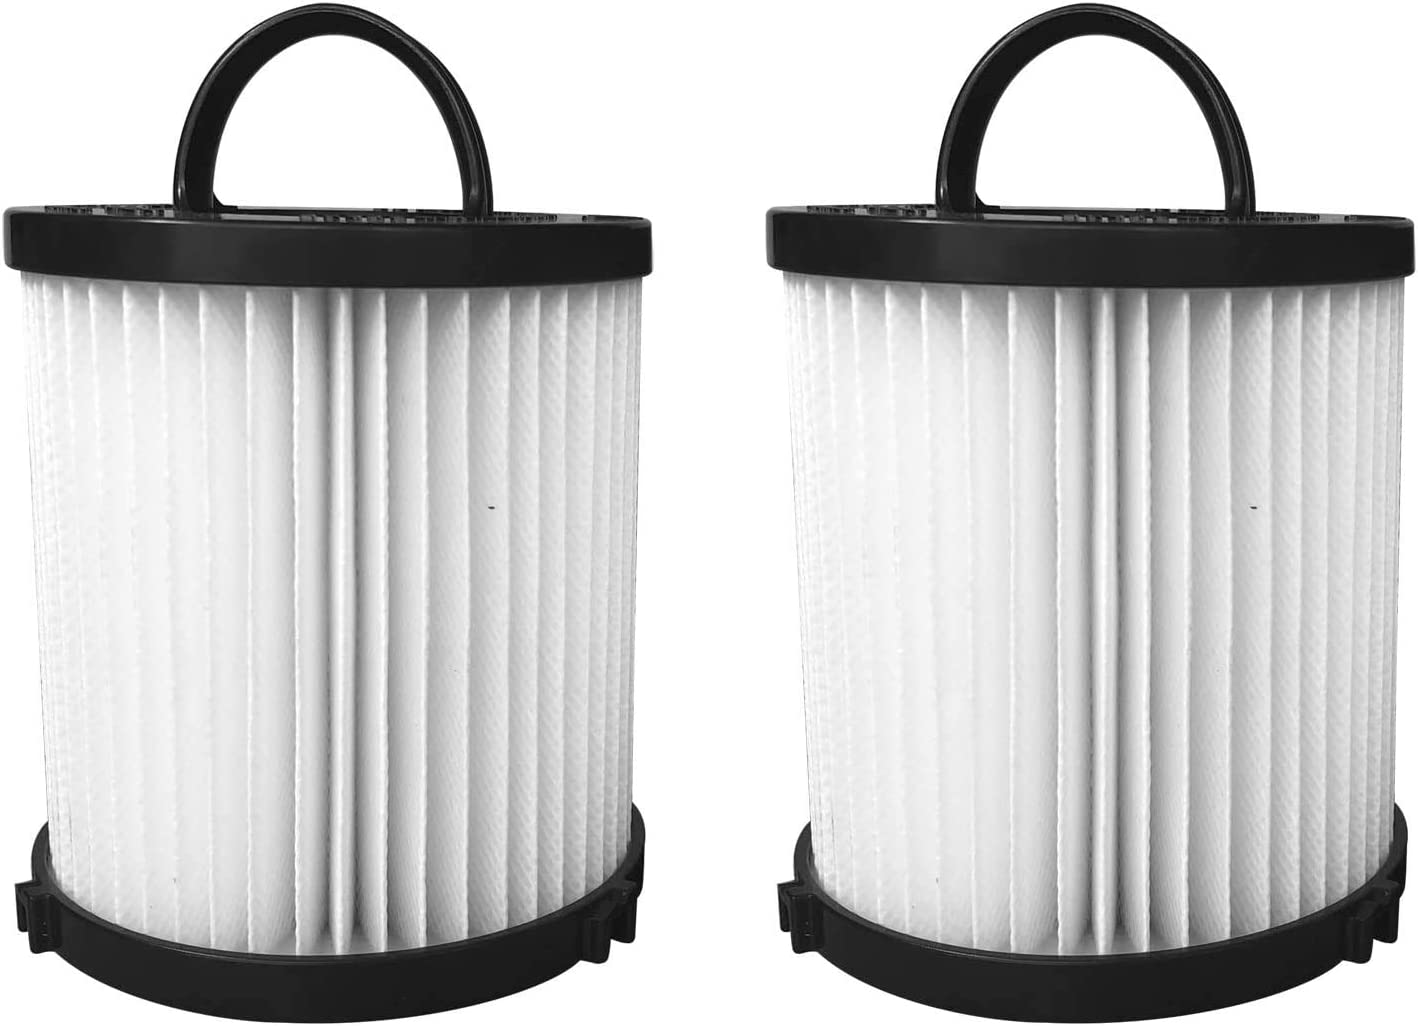 Aliddle 2-PACK Hepa Filter for Eureka DCF-21 Vacuum Part # 67821, 68931, 68931A, EF91, EF-91, EF-91B Airspeed Washable Reusable Vacuum Filter